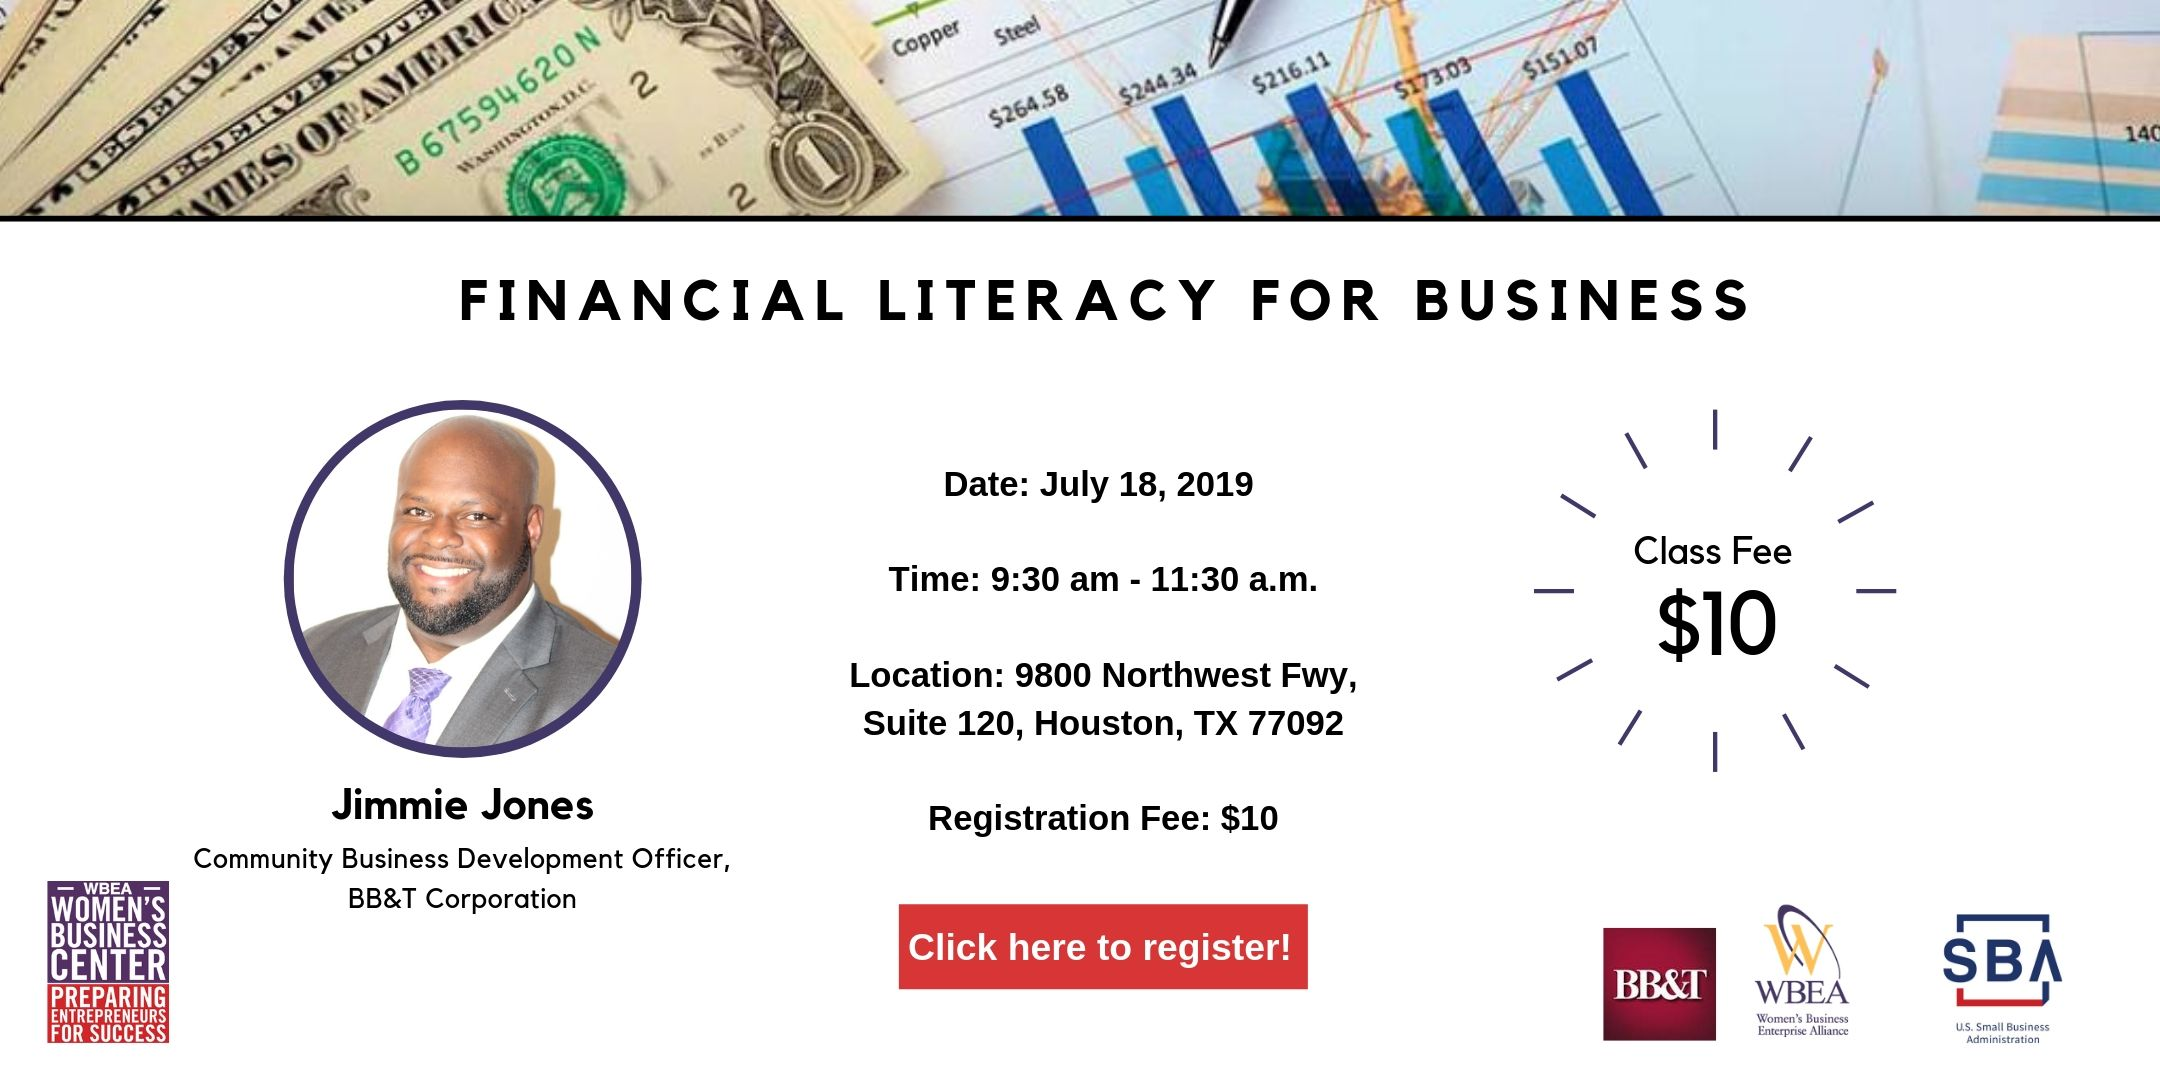 Financial Literacy for Business